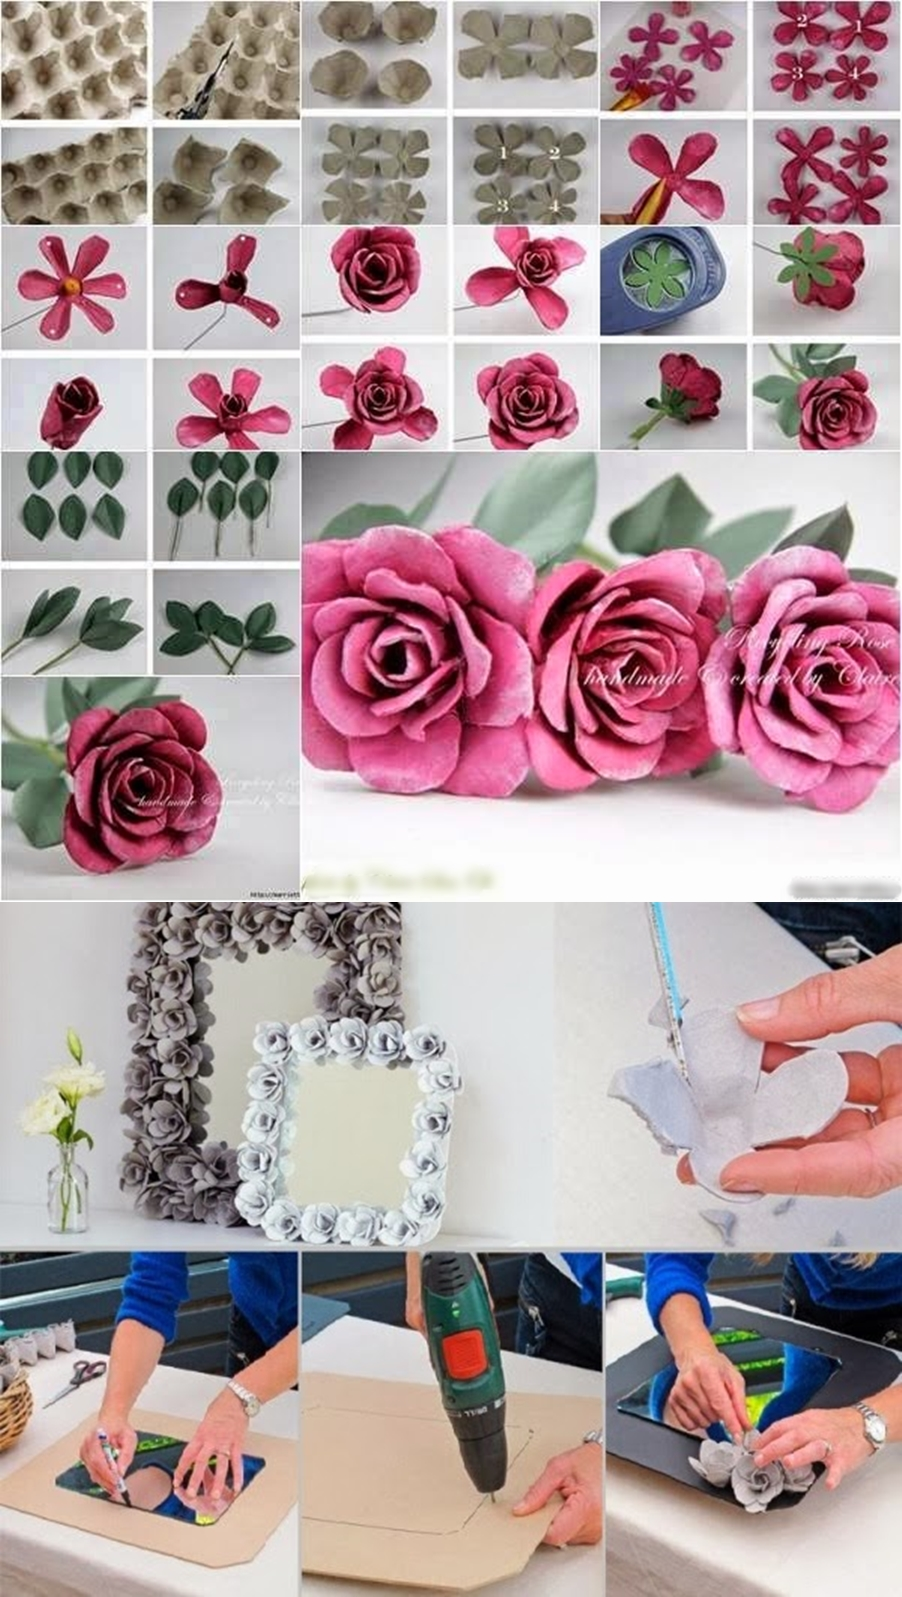 egg carton rose M Extraordinary Egg Carton Decorative Flowers